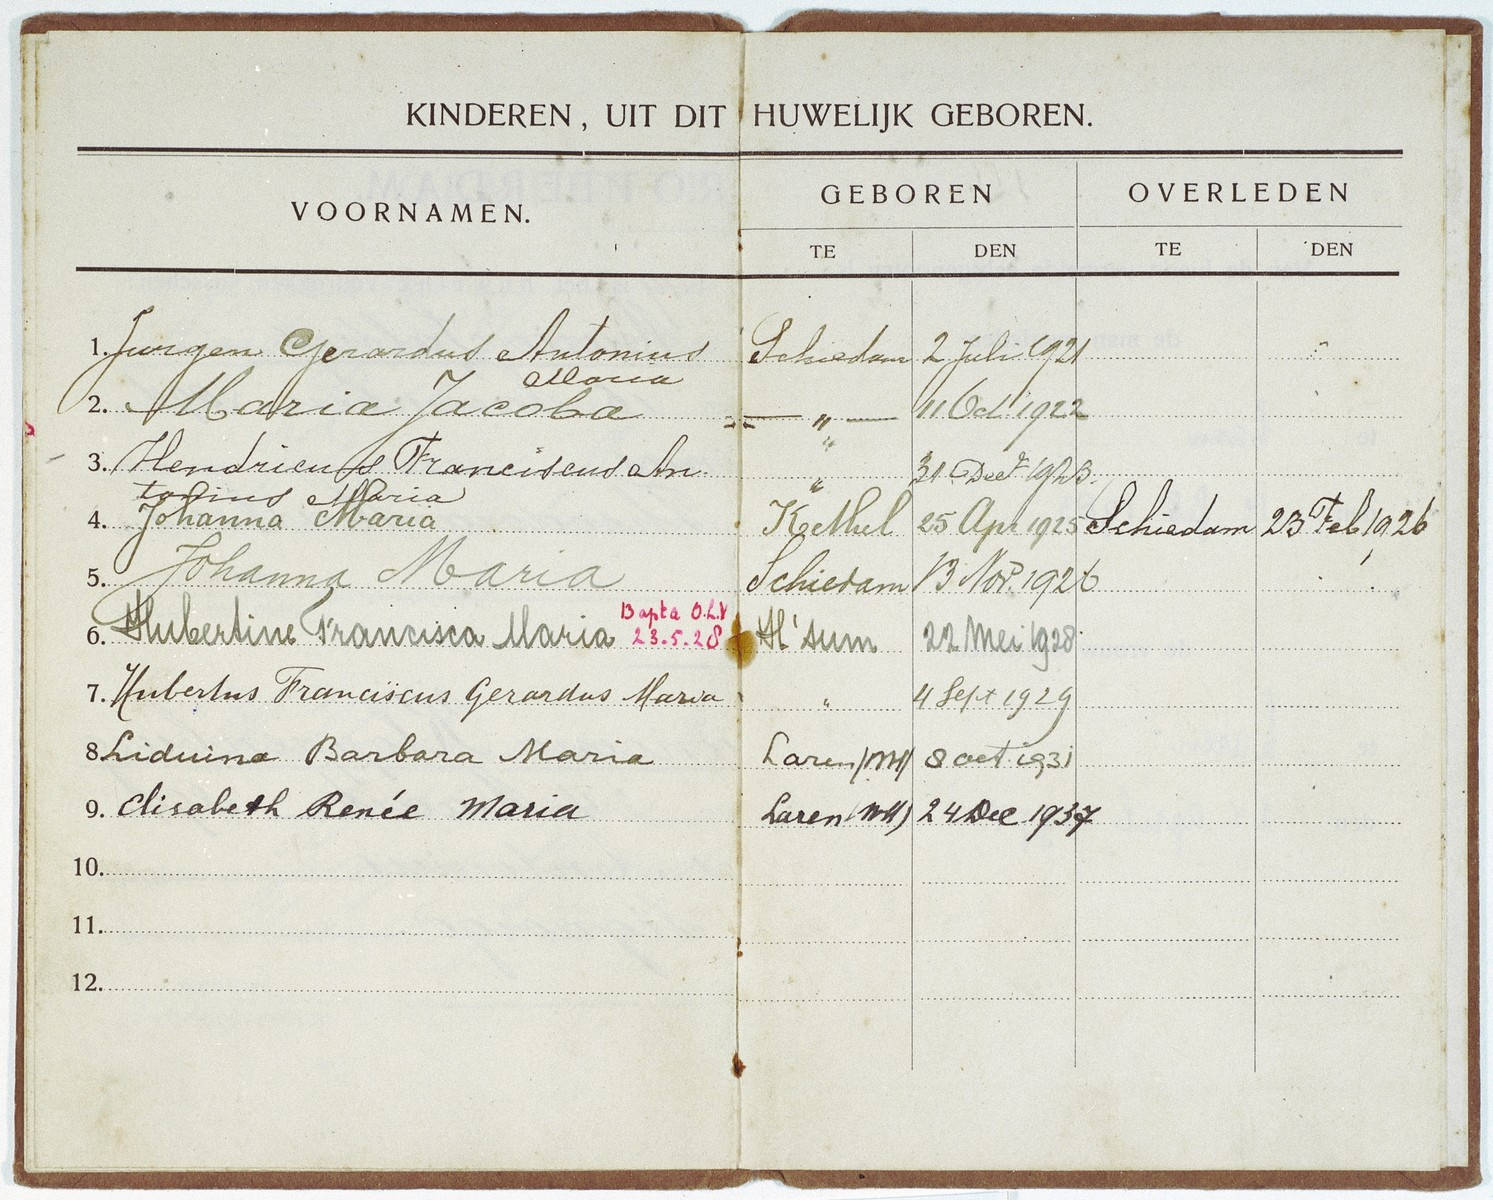 Identification paper that lists the Jewish child, Elizabeth Reiss, as the ninth child of her Dutch rescuers, Antonius Johannes Salters and Wilhemina Salters-Kloppenburg.